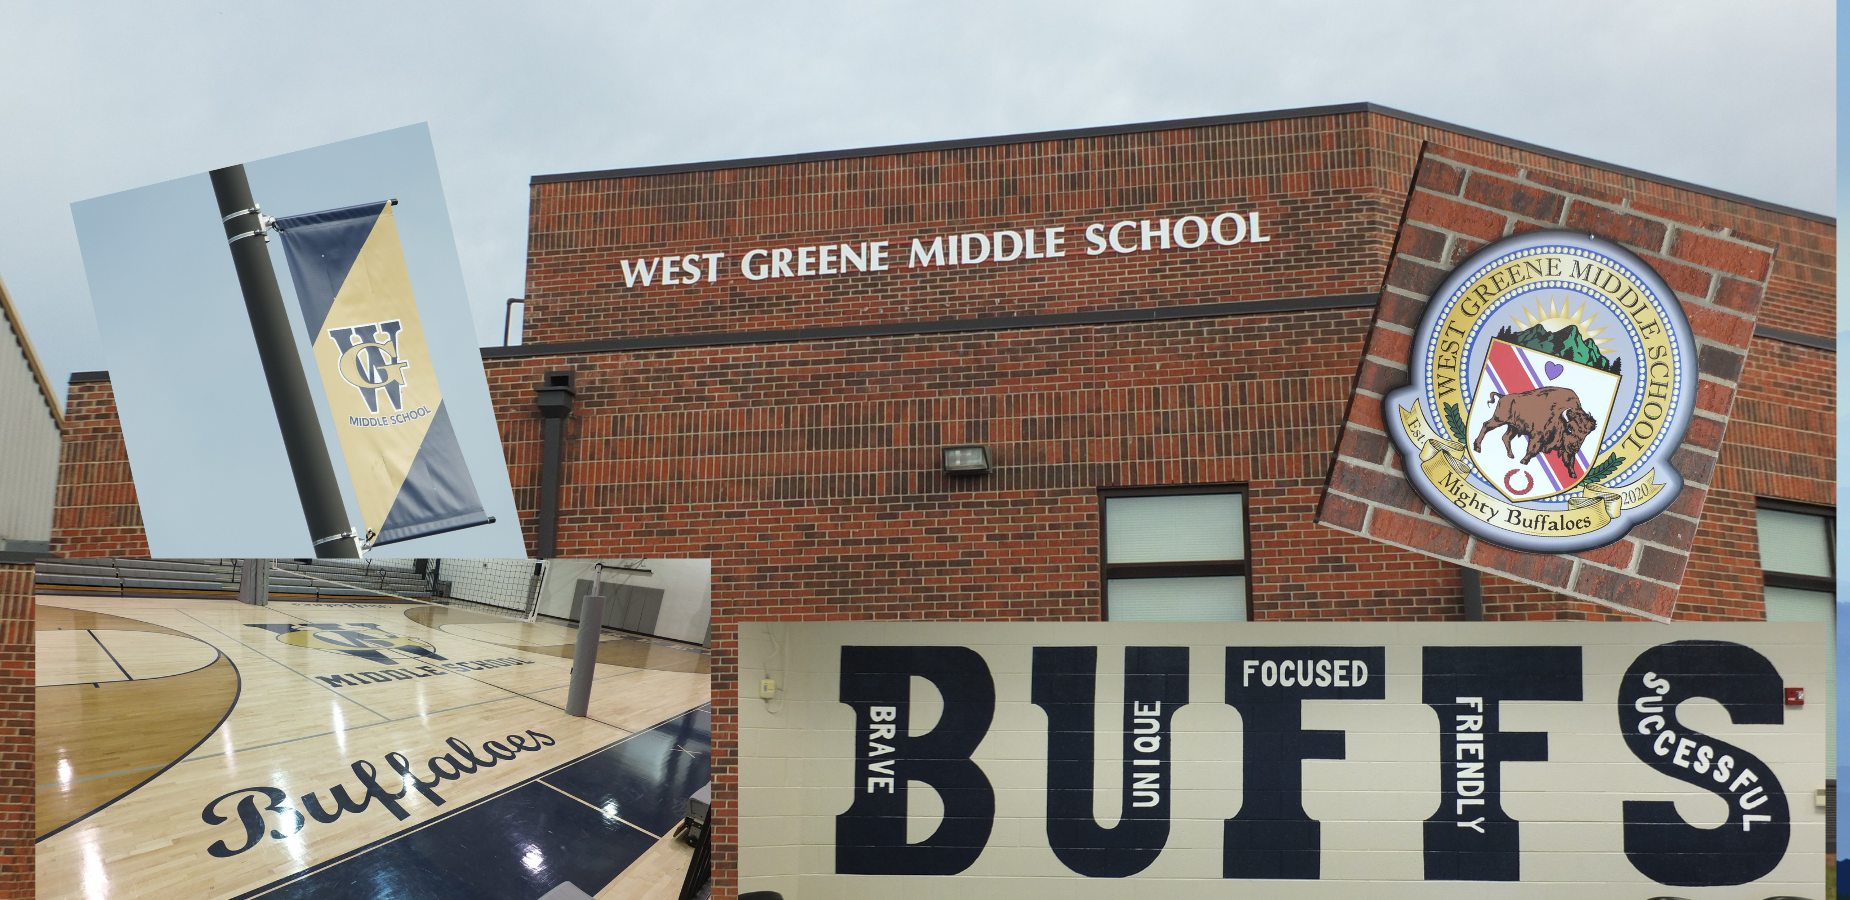 WGMS Collage